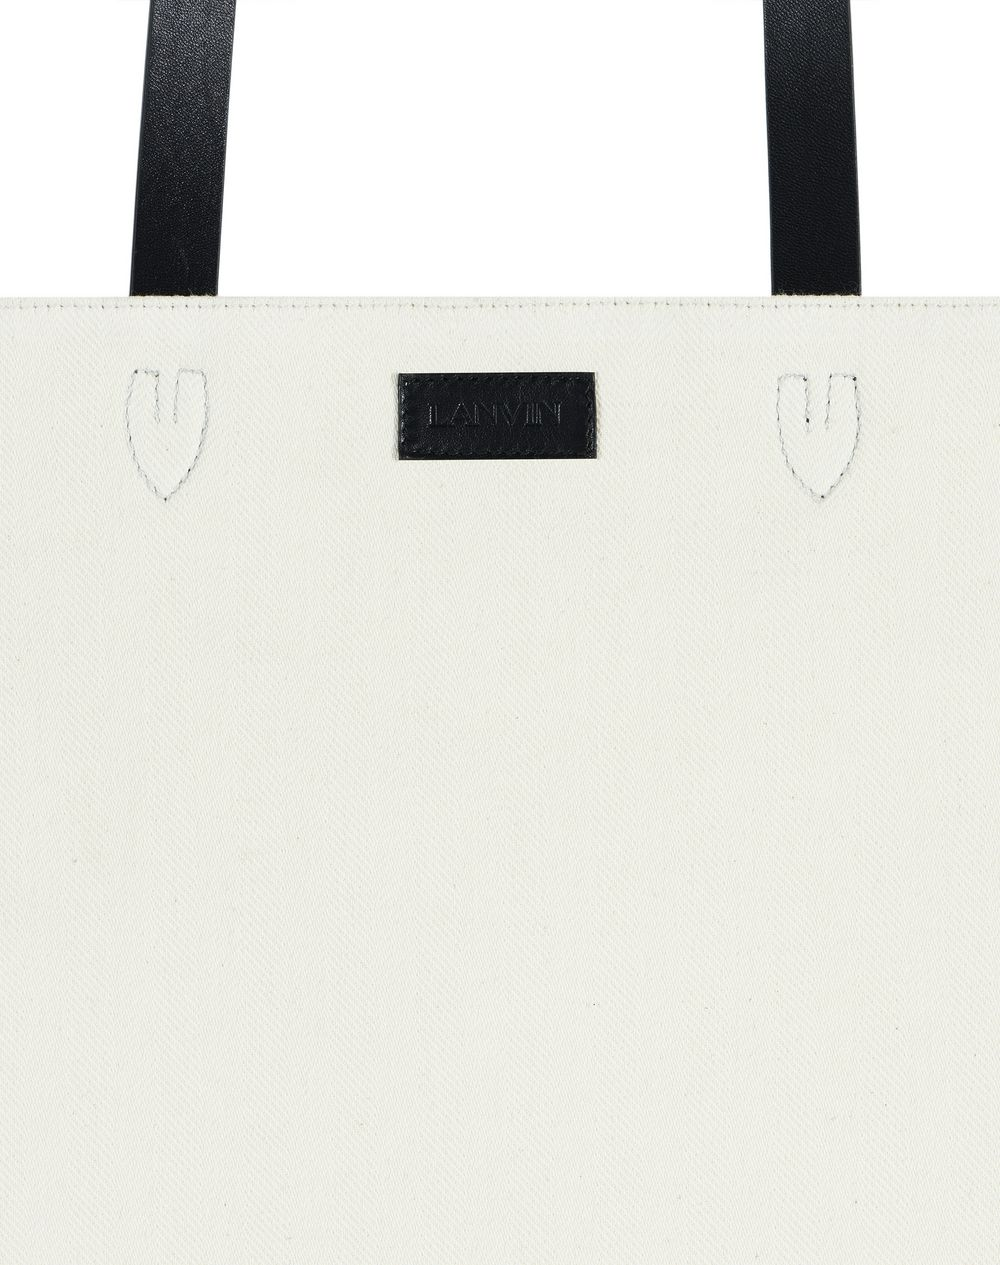 PRINTED COTTON TOTE BAG - Lanvin